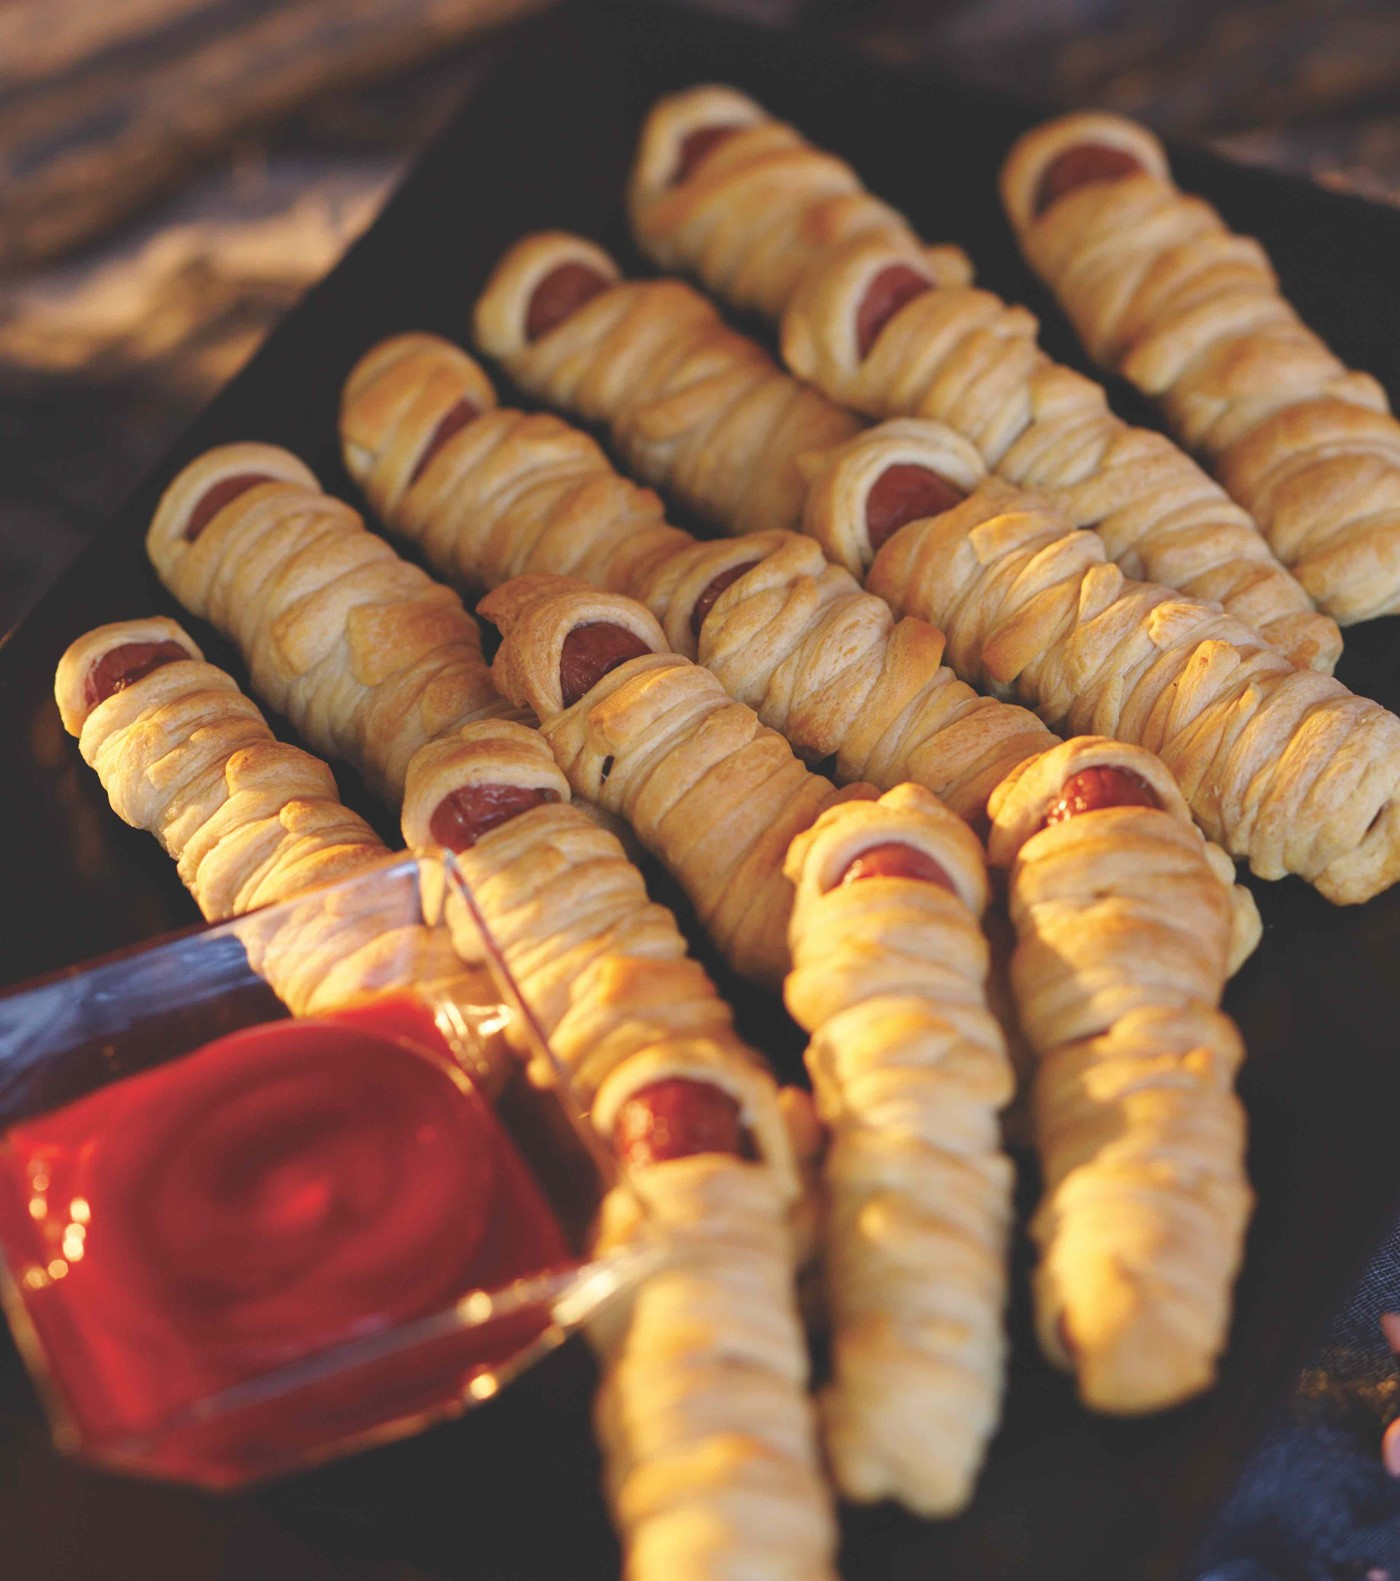 Hot Dogs Wrapped in Thin Pieces of Dough and Baked to Golden Brown